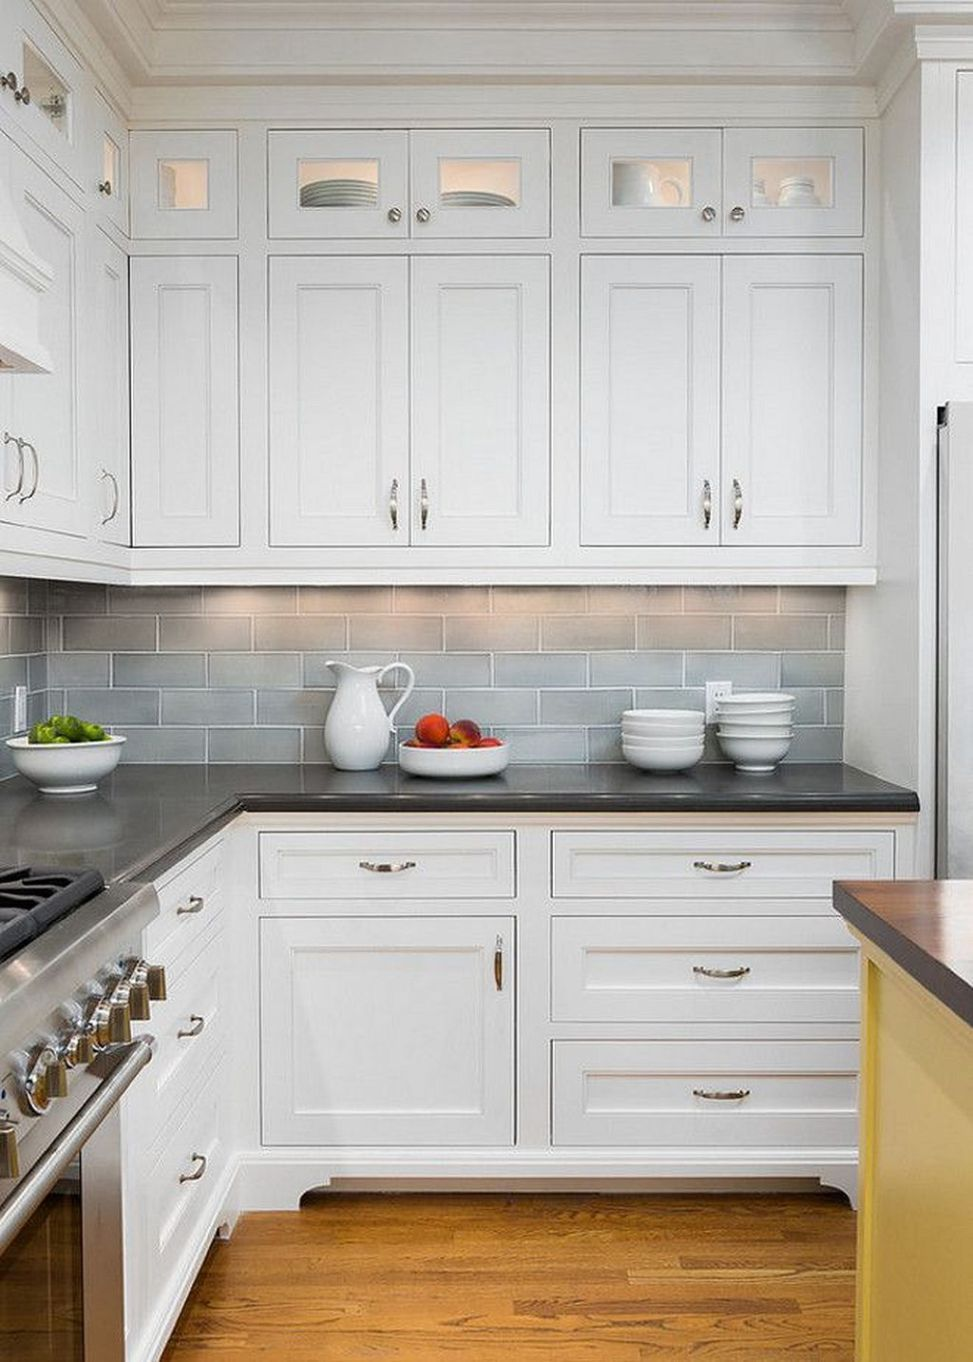 Modern white kitchen cabinets and backsplash design ideas in